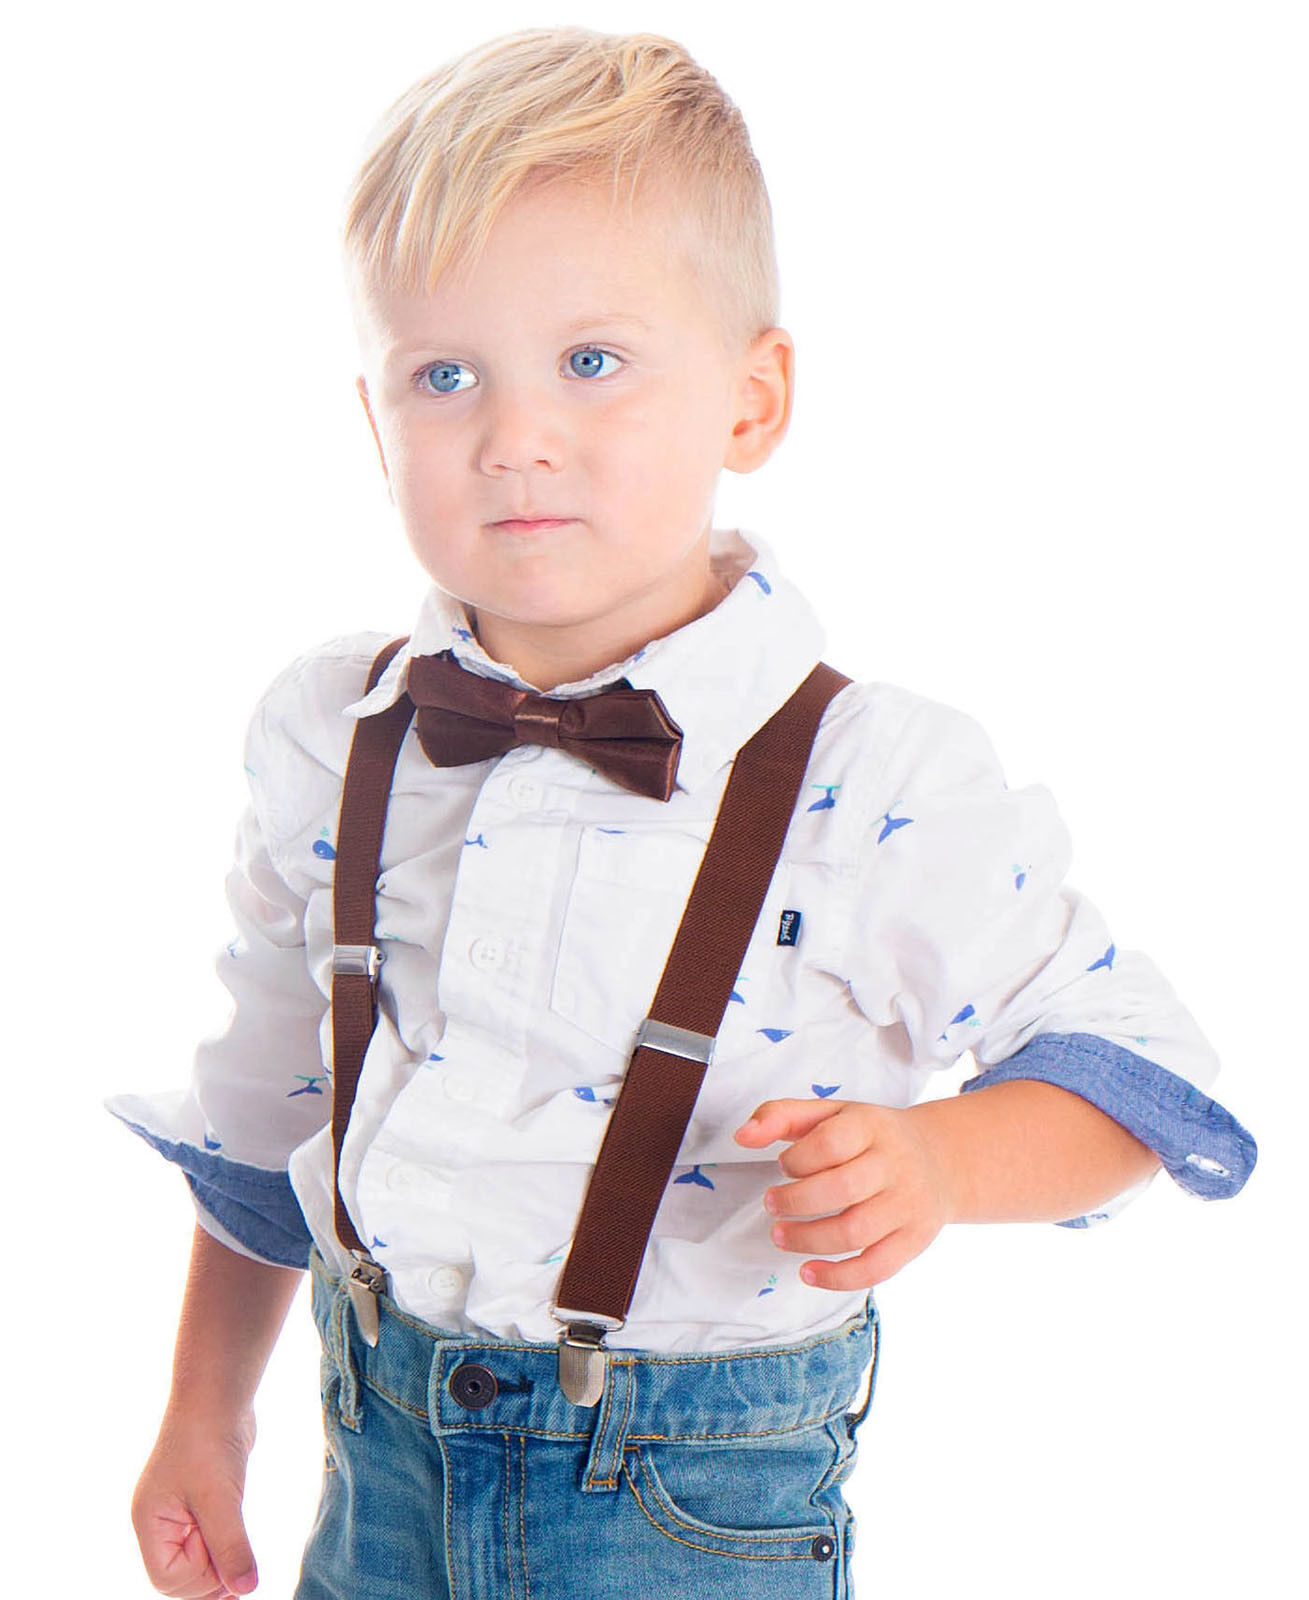 Boys Bow Ties Suspenders Birthday Outfit Party Wedding Set F